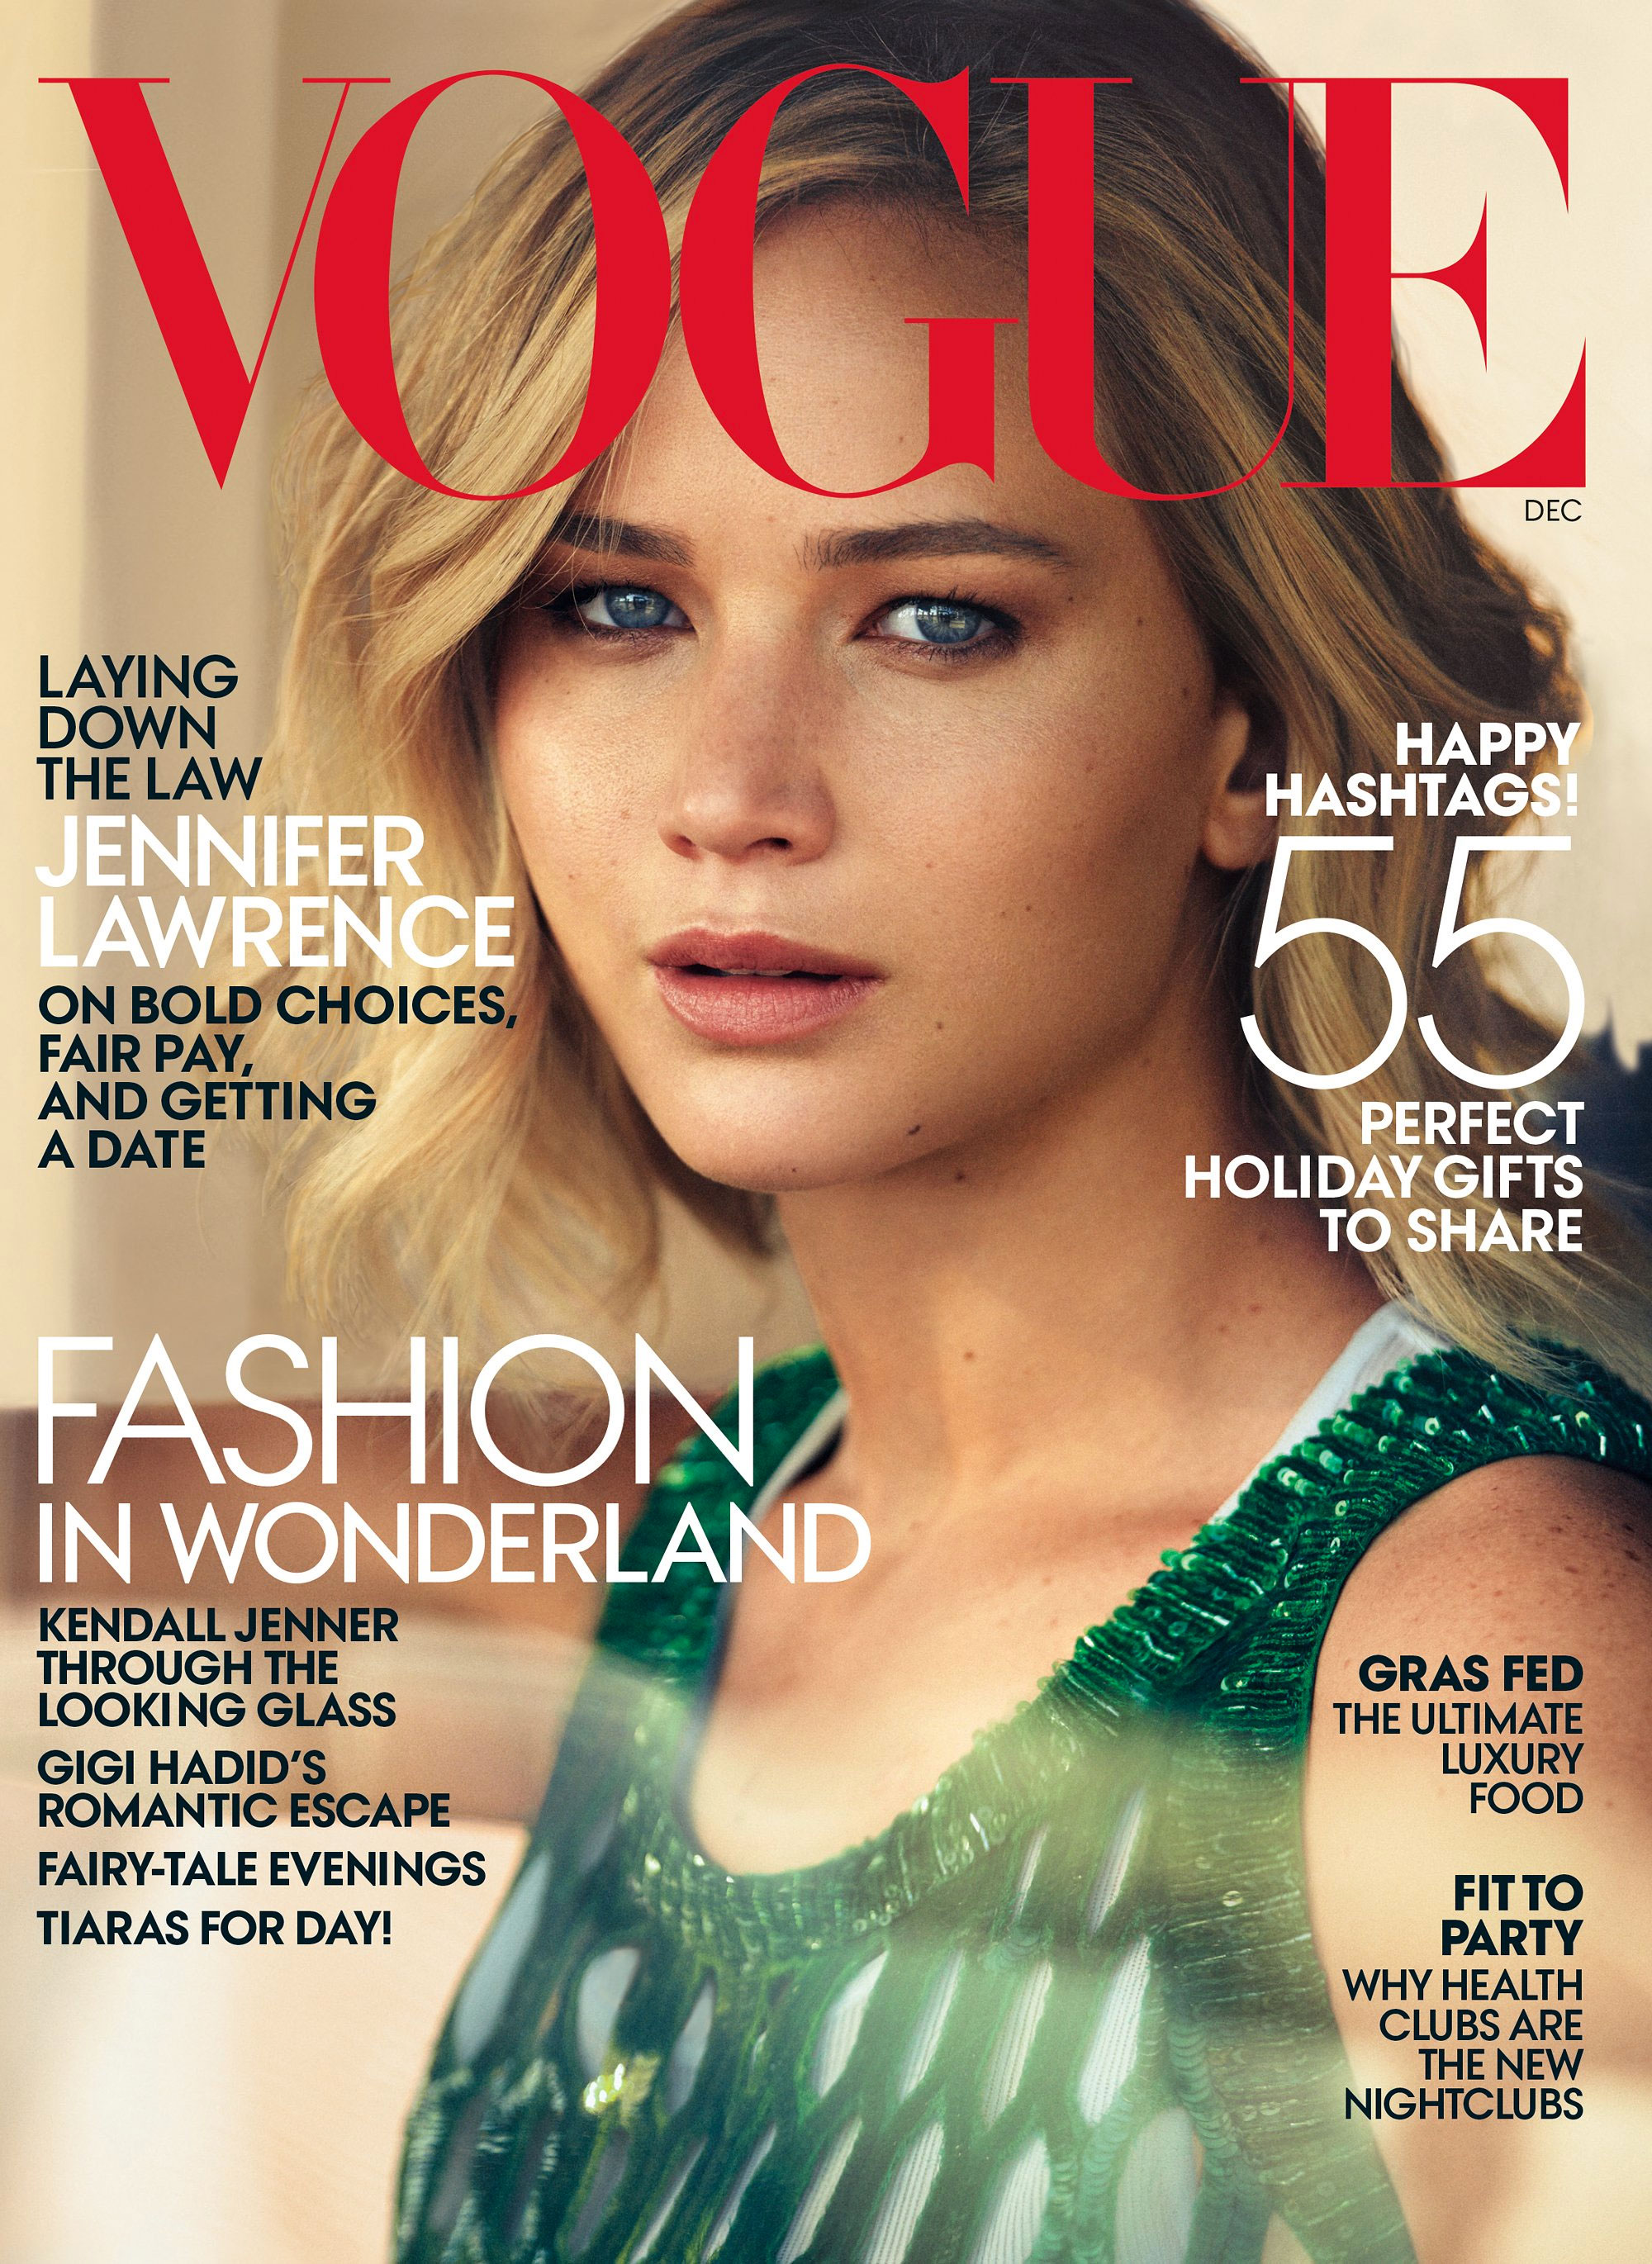 6 things we learnt from Jennifer Lawrence's Vogue interview